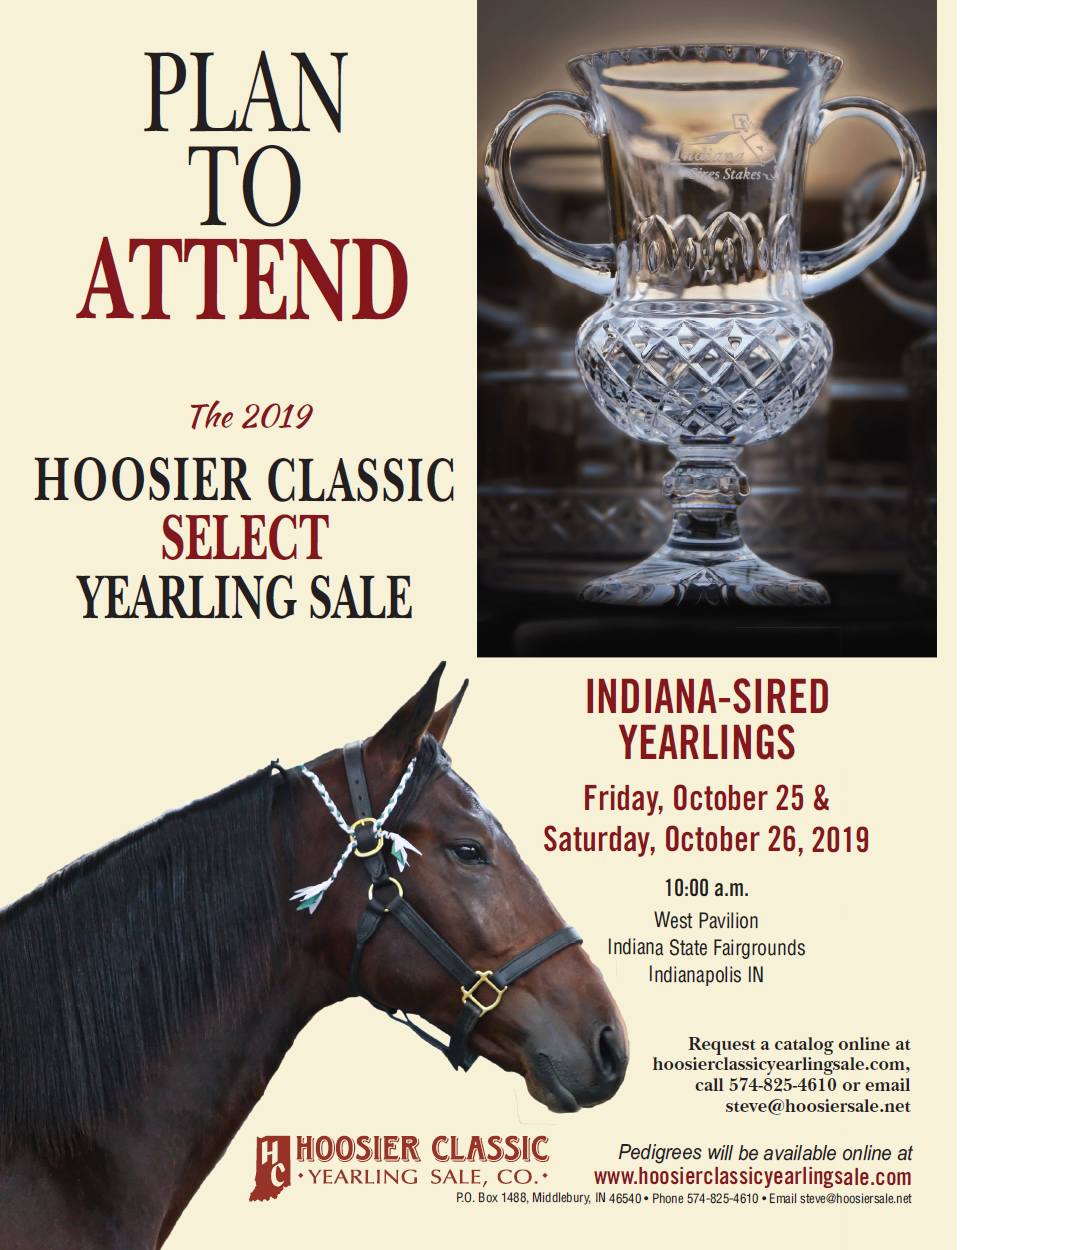 Hoosier_Classic_Yearling_Sale_091019